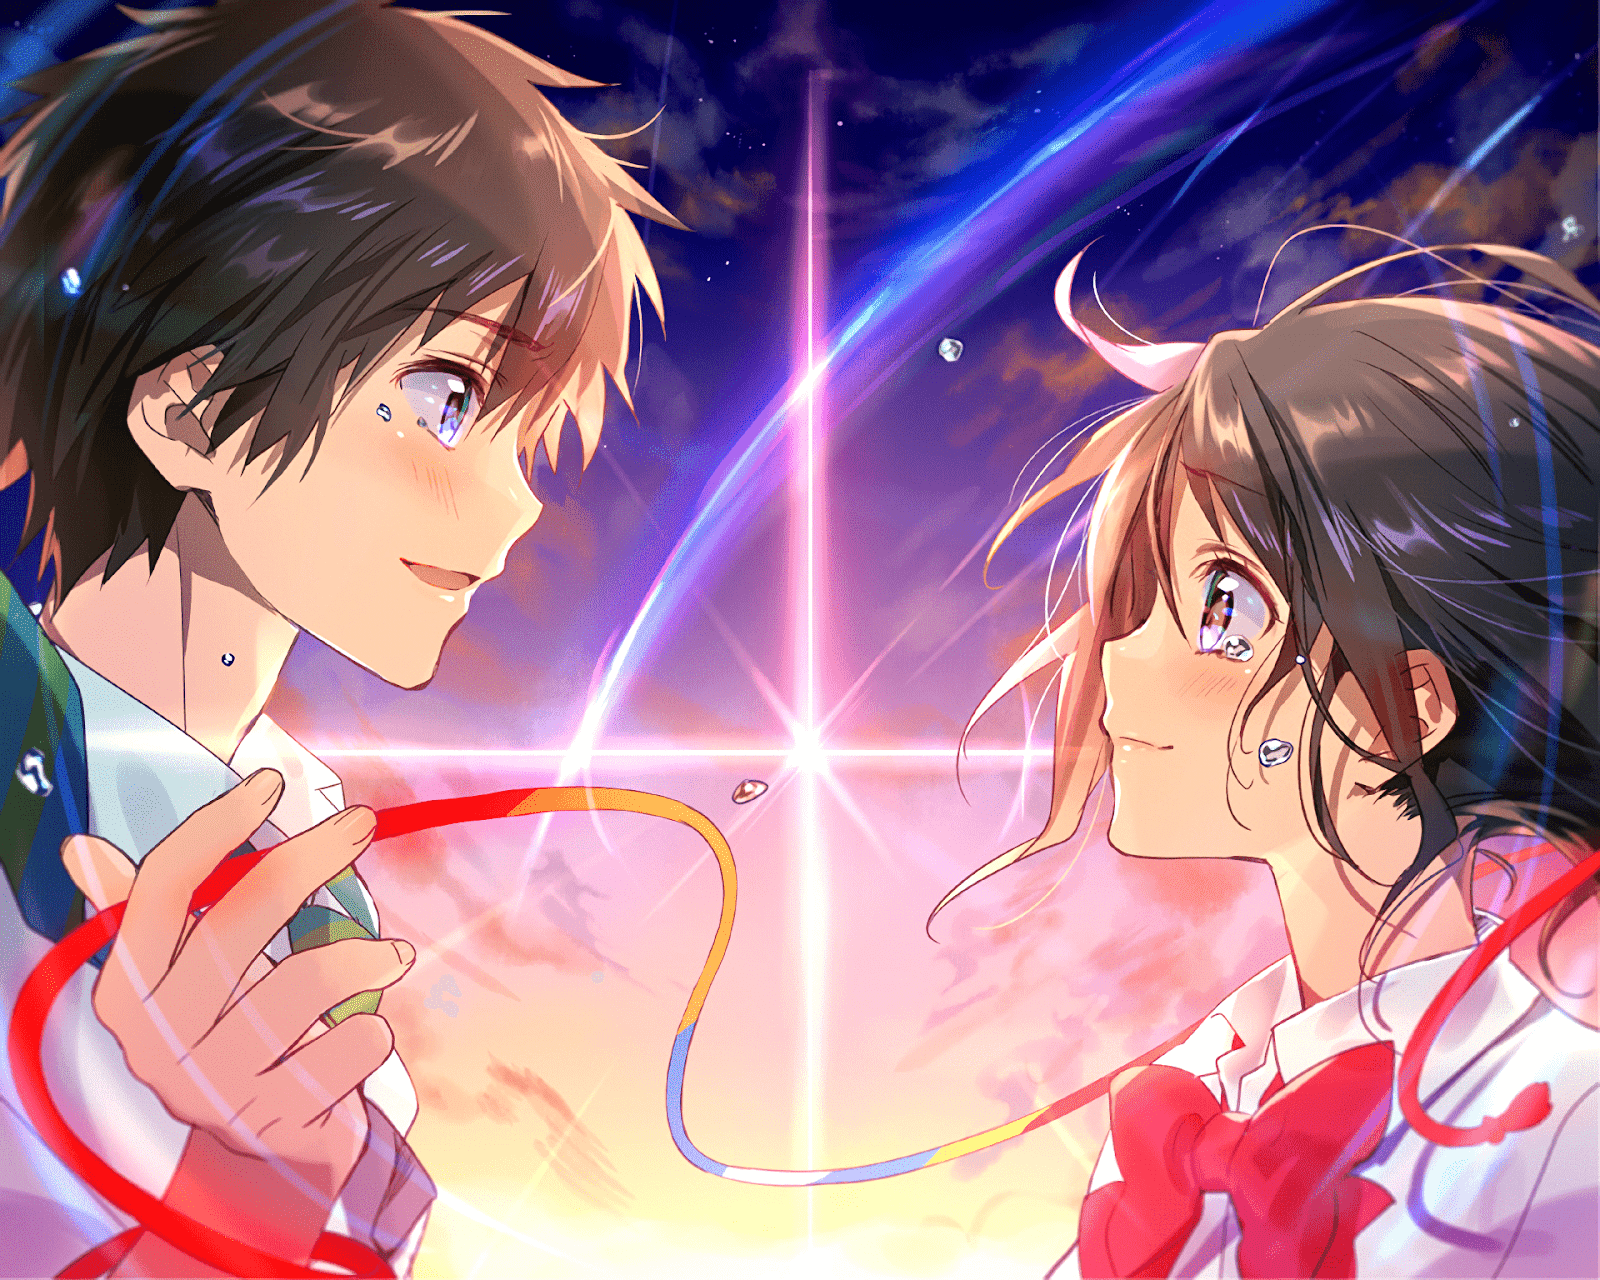 AowVN%2B%252832%2529 - [ Hình Nền ] Anime Your Name. - Kimi no Nawa full HD cực đẹp | Anime Wallpaper